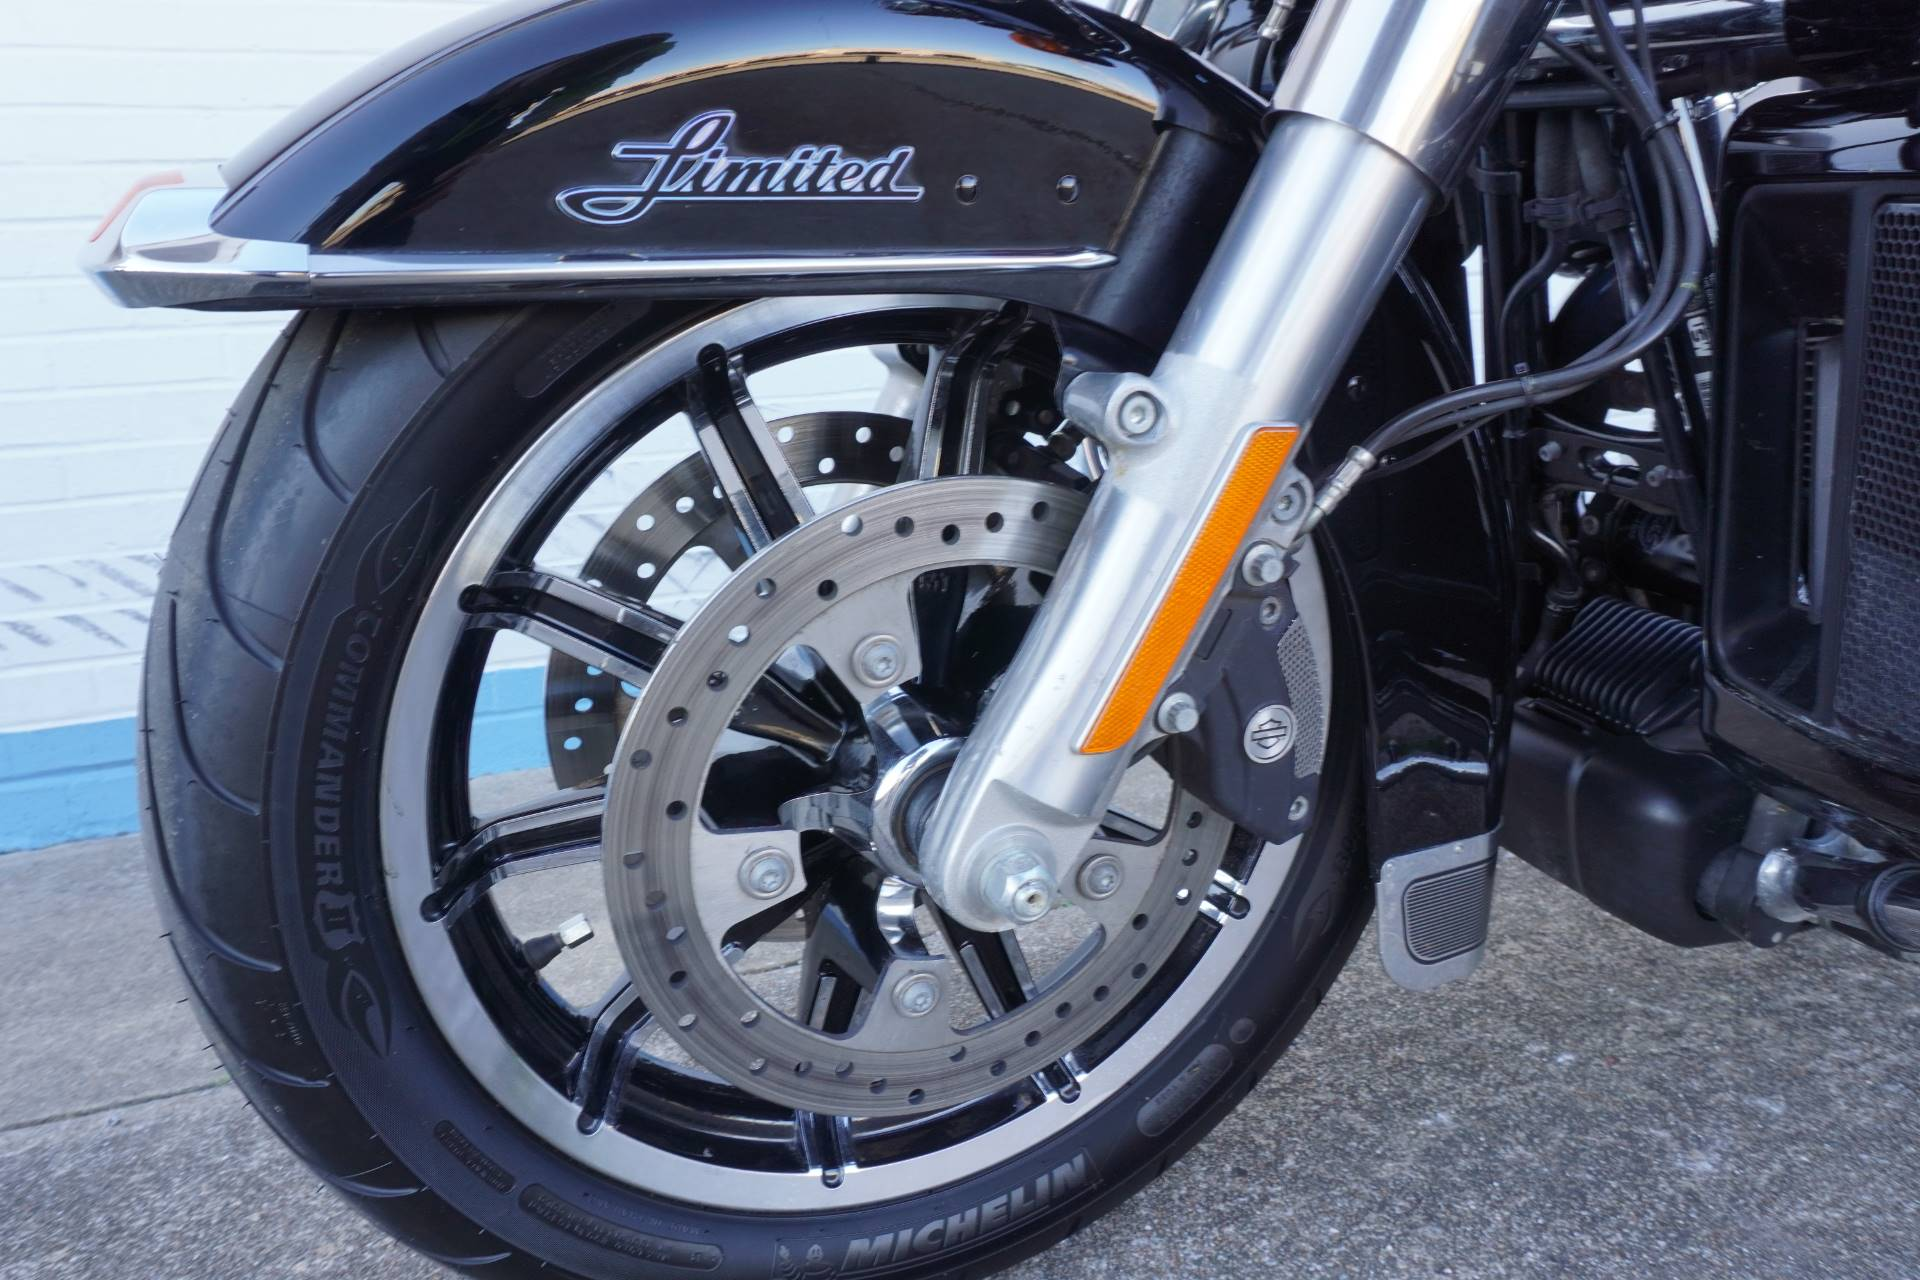 2016 Harley-Davidson Ultra Limited Low in Tulsa, Oklahoma - Photo 37